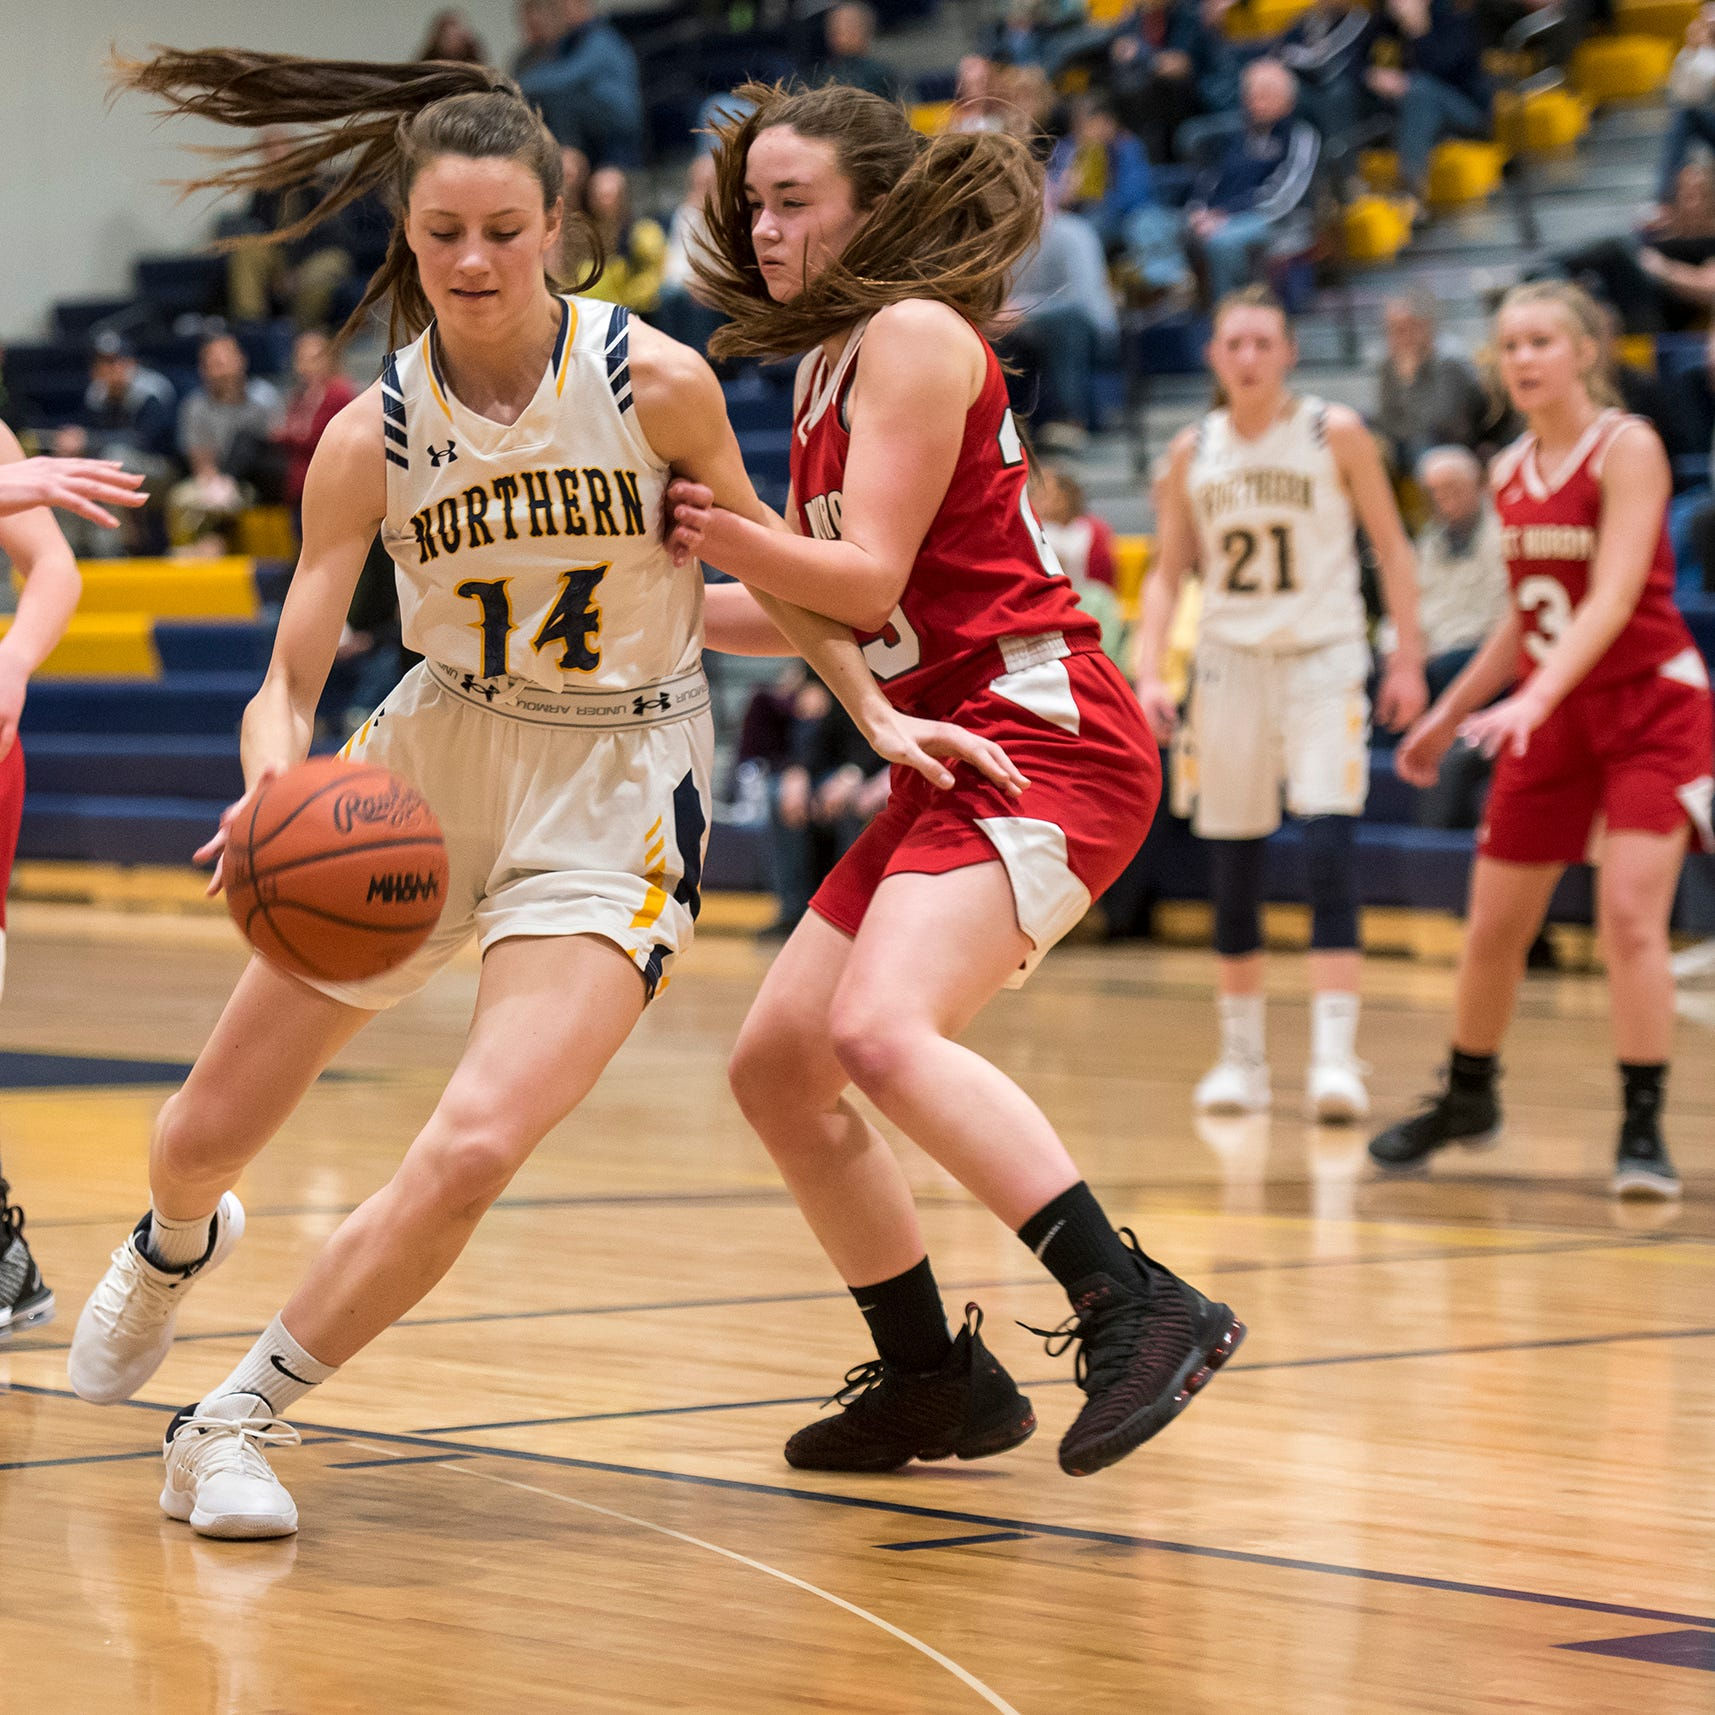 Girls Basketball: Port Huron Northern outlasts Port Huron High